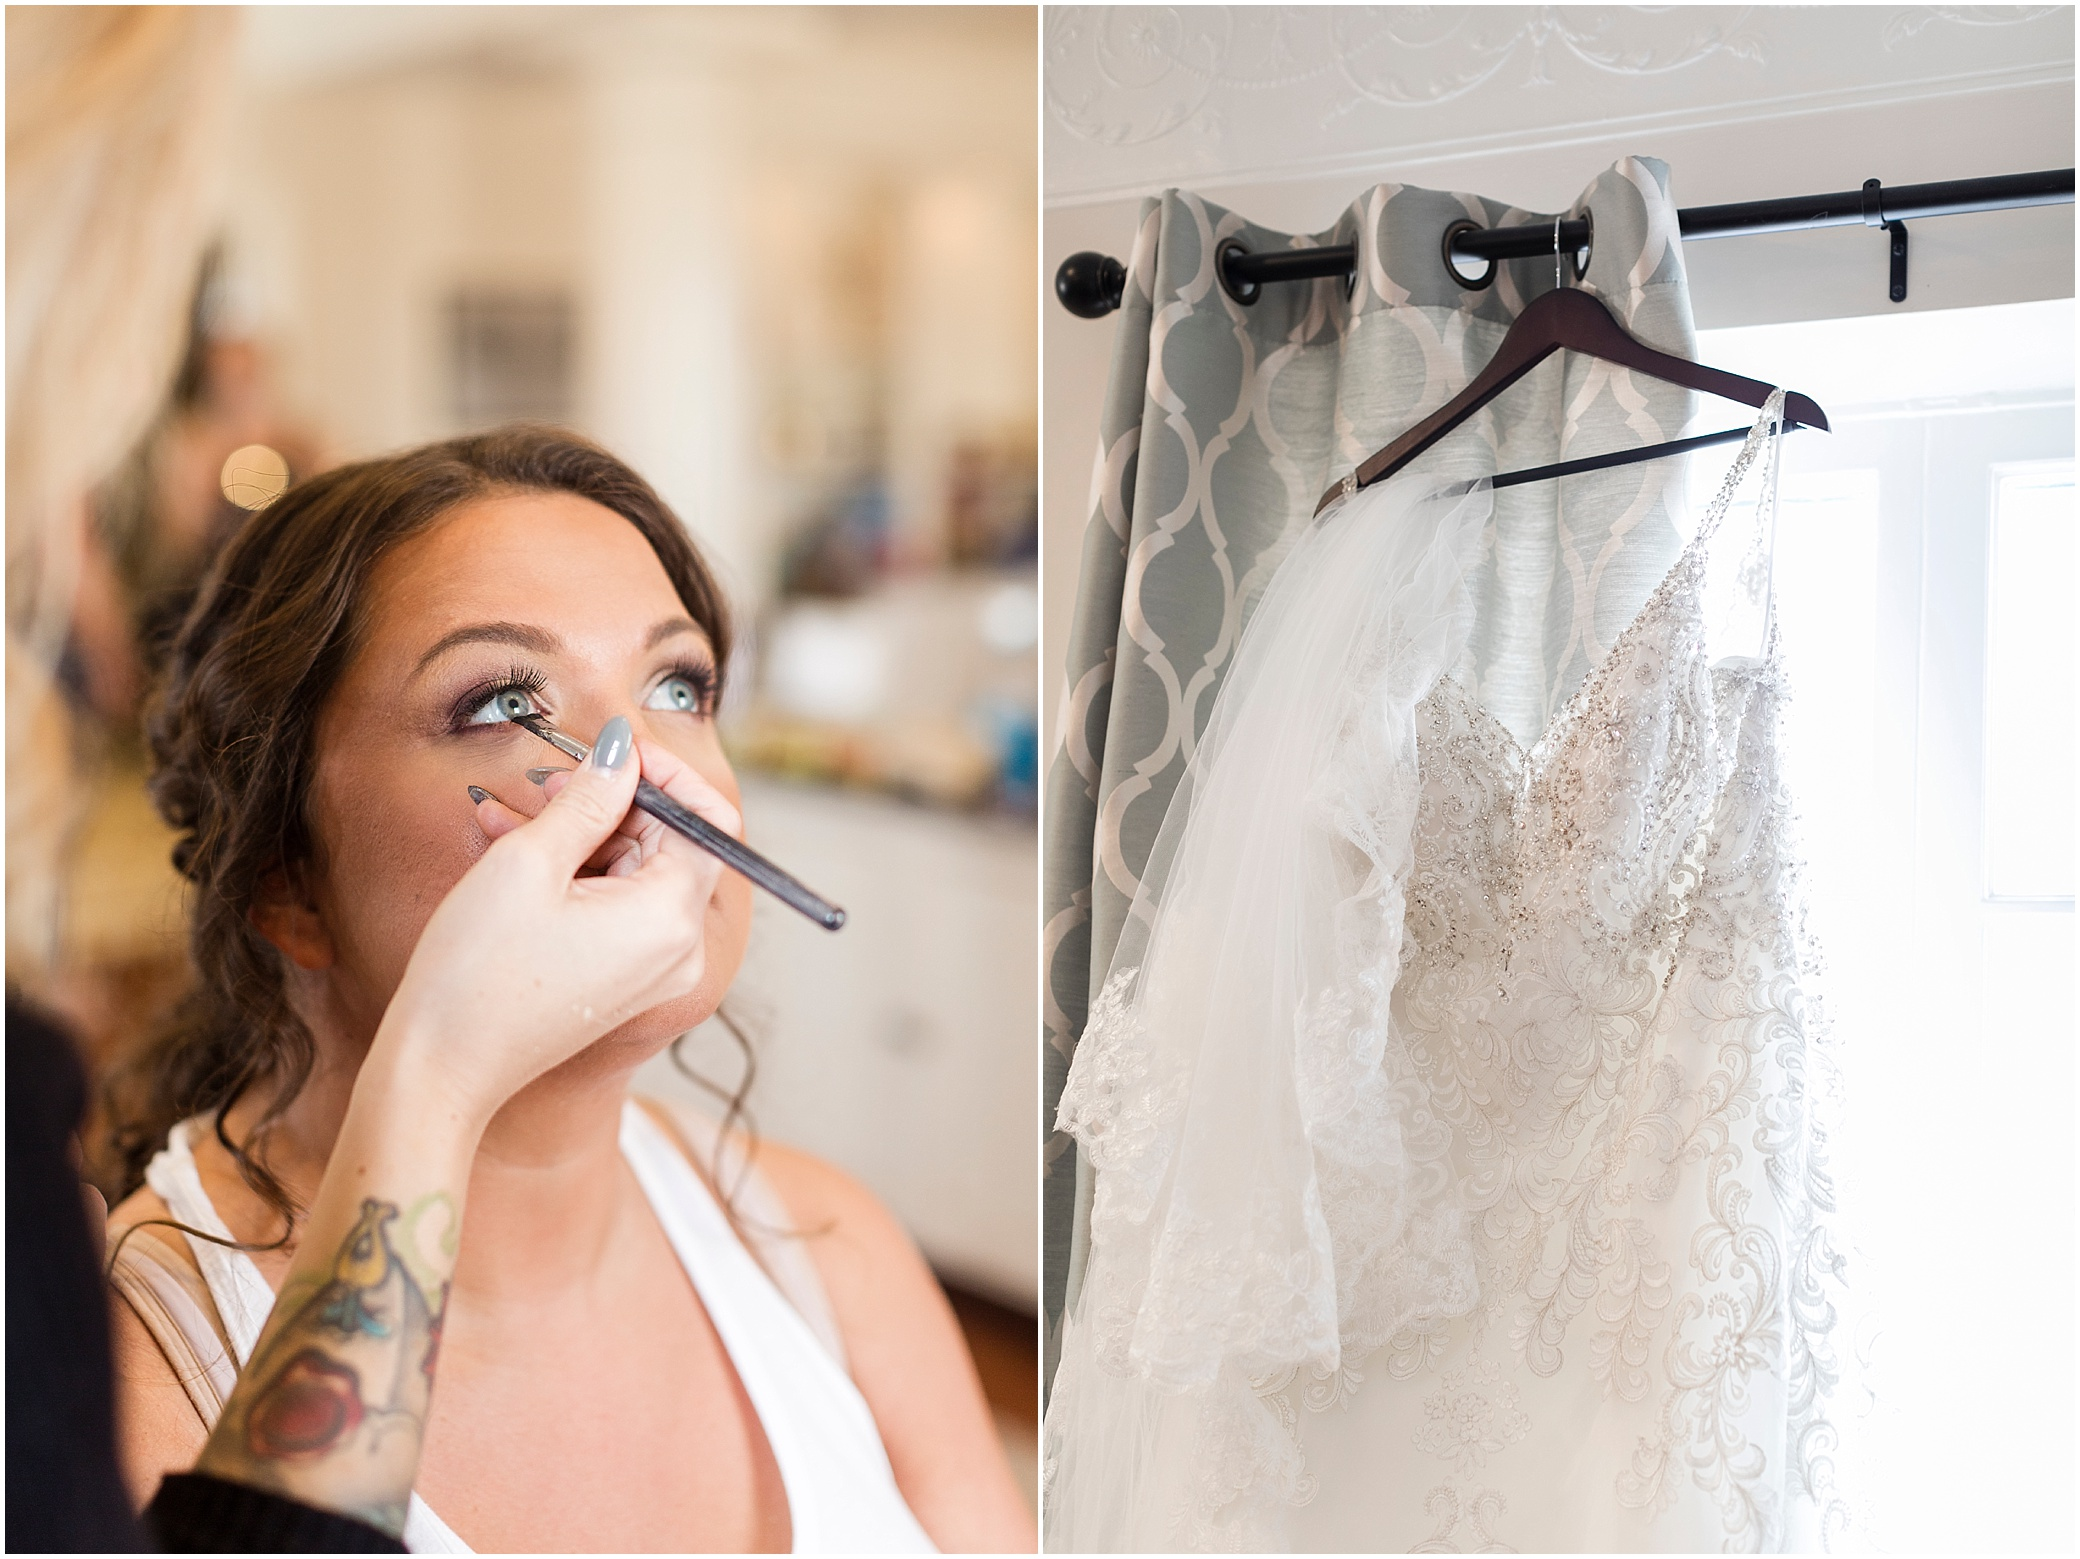 crystal clear event wedding giveaway, historic post office wedding, Waterford event rentals, bridal suite, getting ready